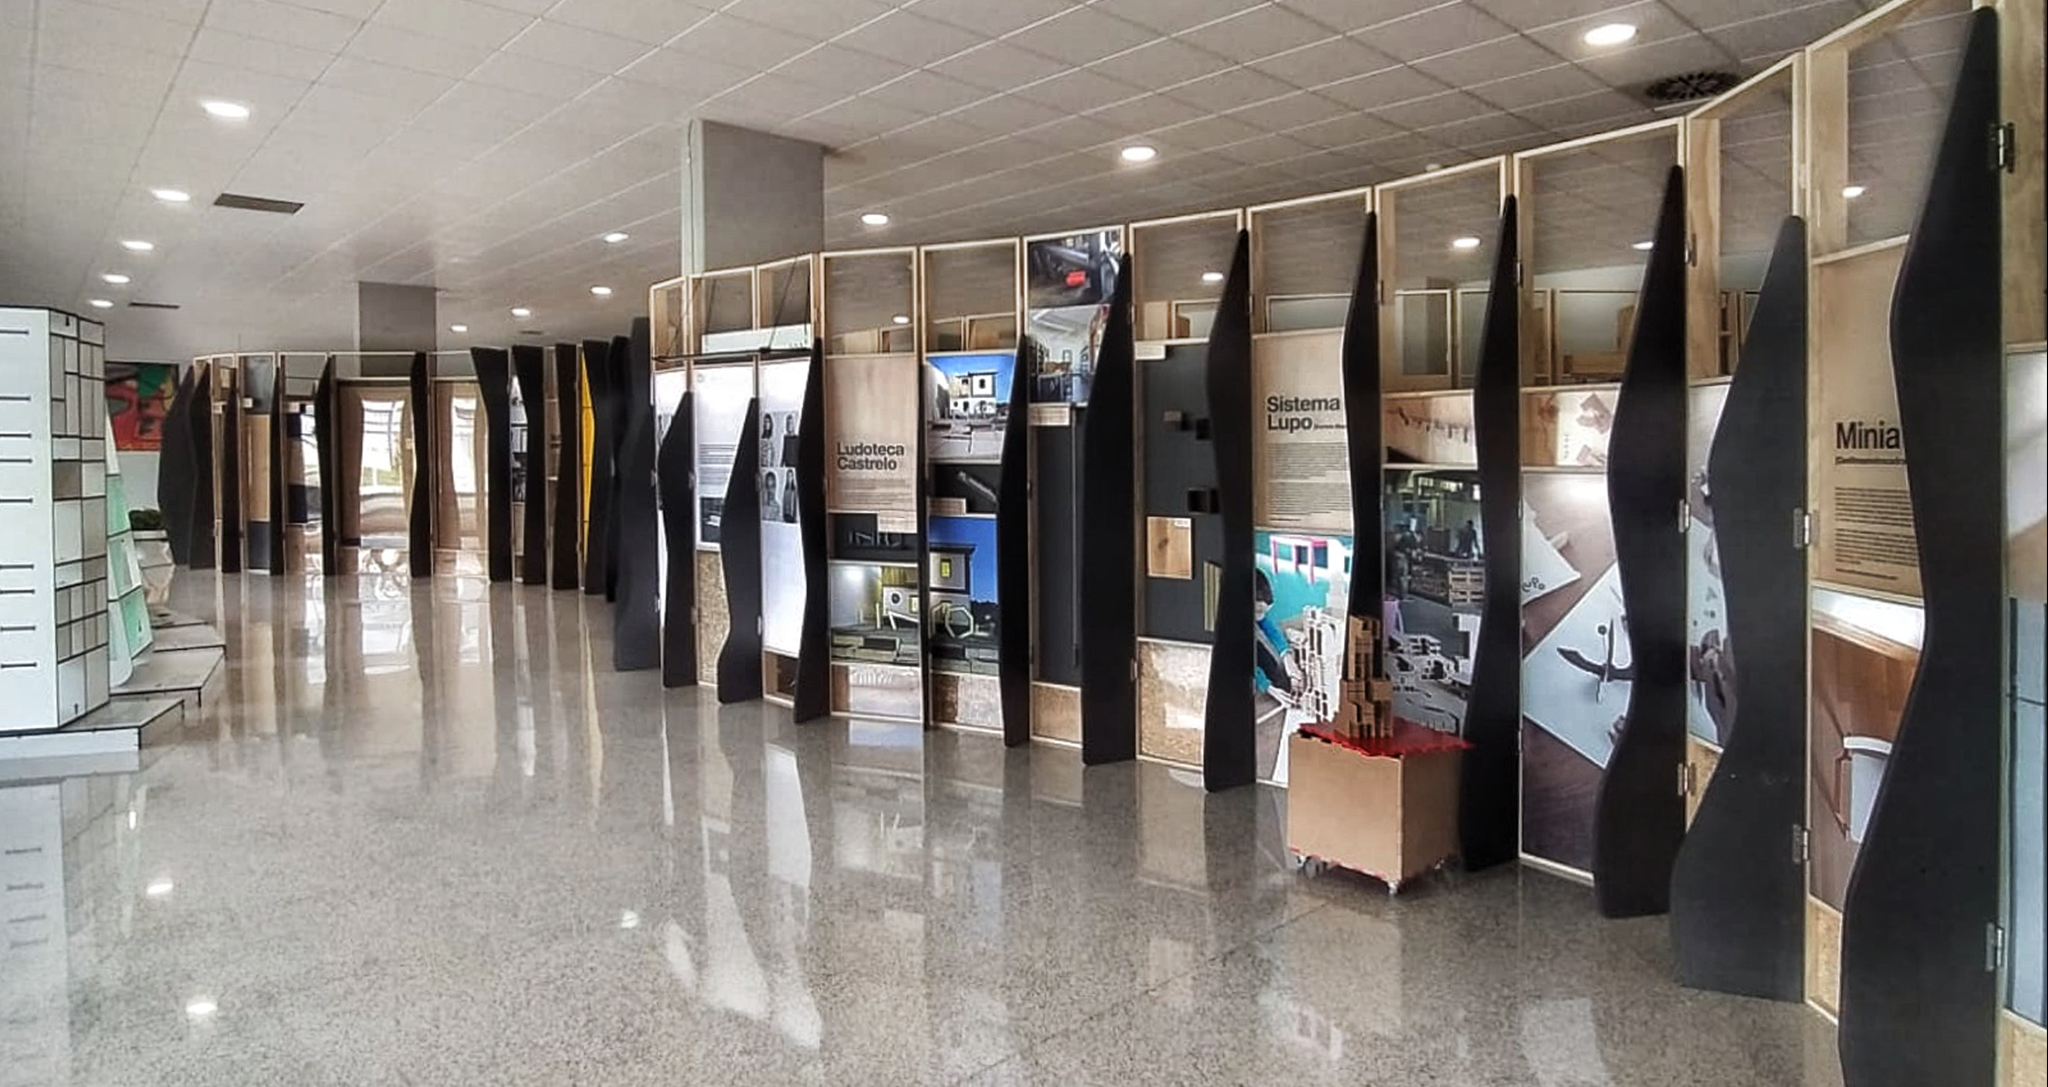 Architecture temporary traveling exhibition Finsa Universidad Zaragoza by Rocamora design Elche Alicante Spain